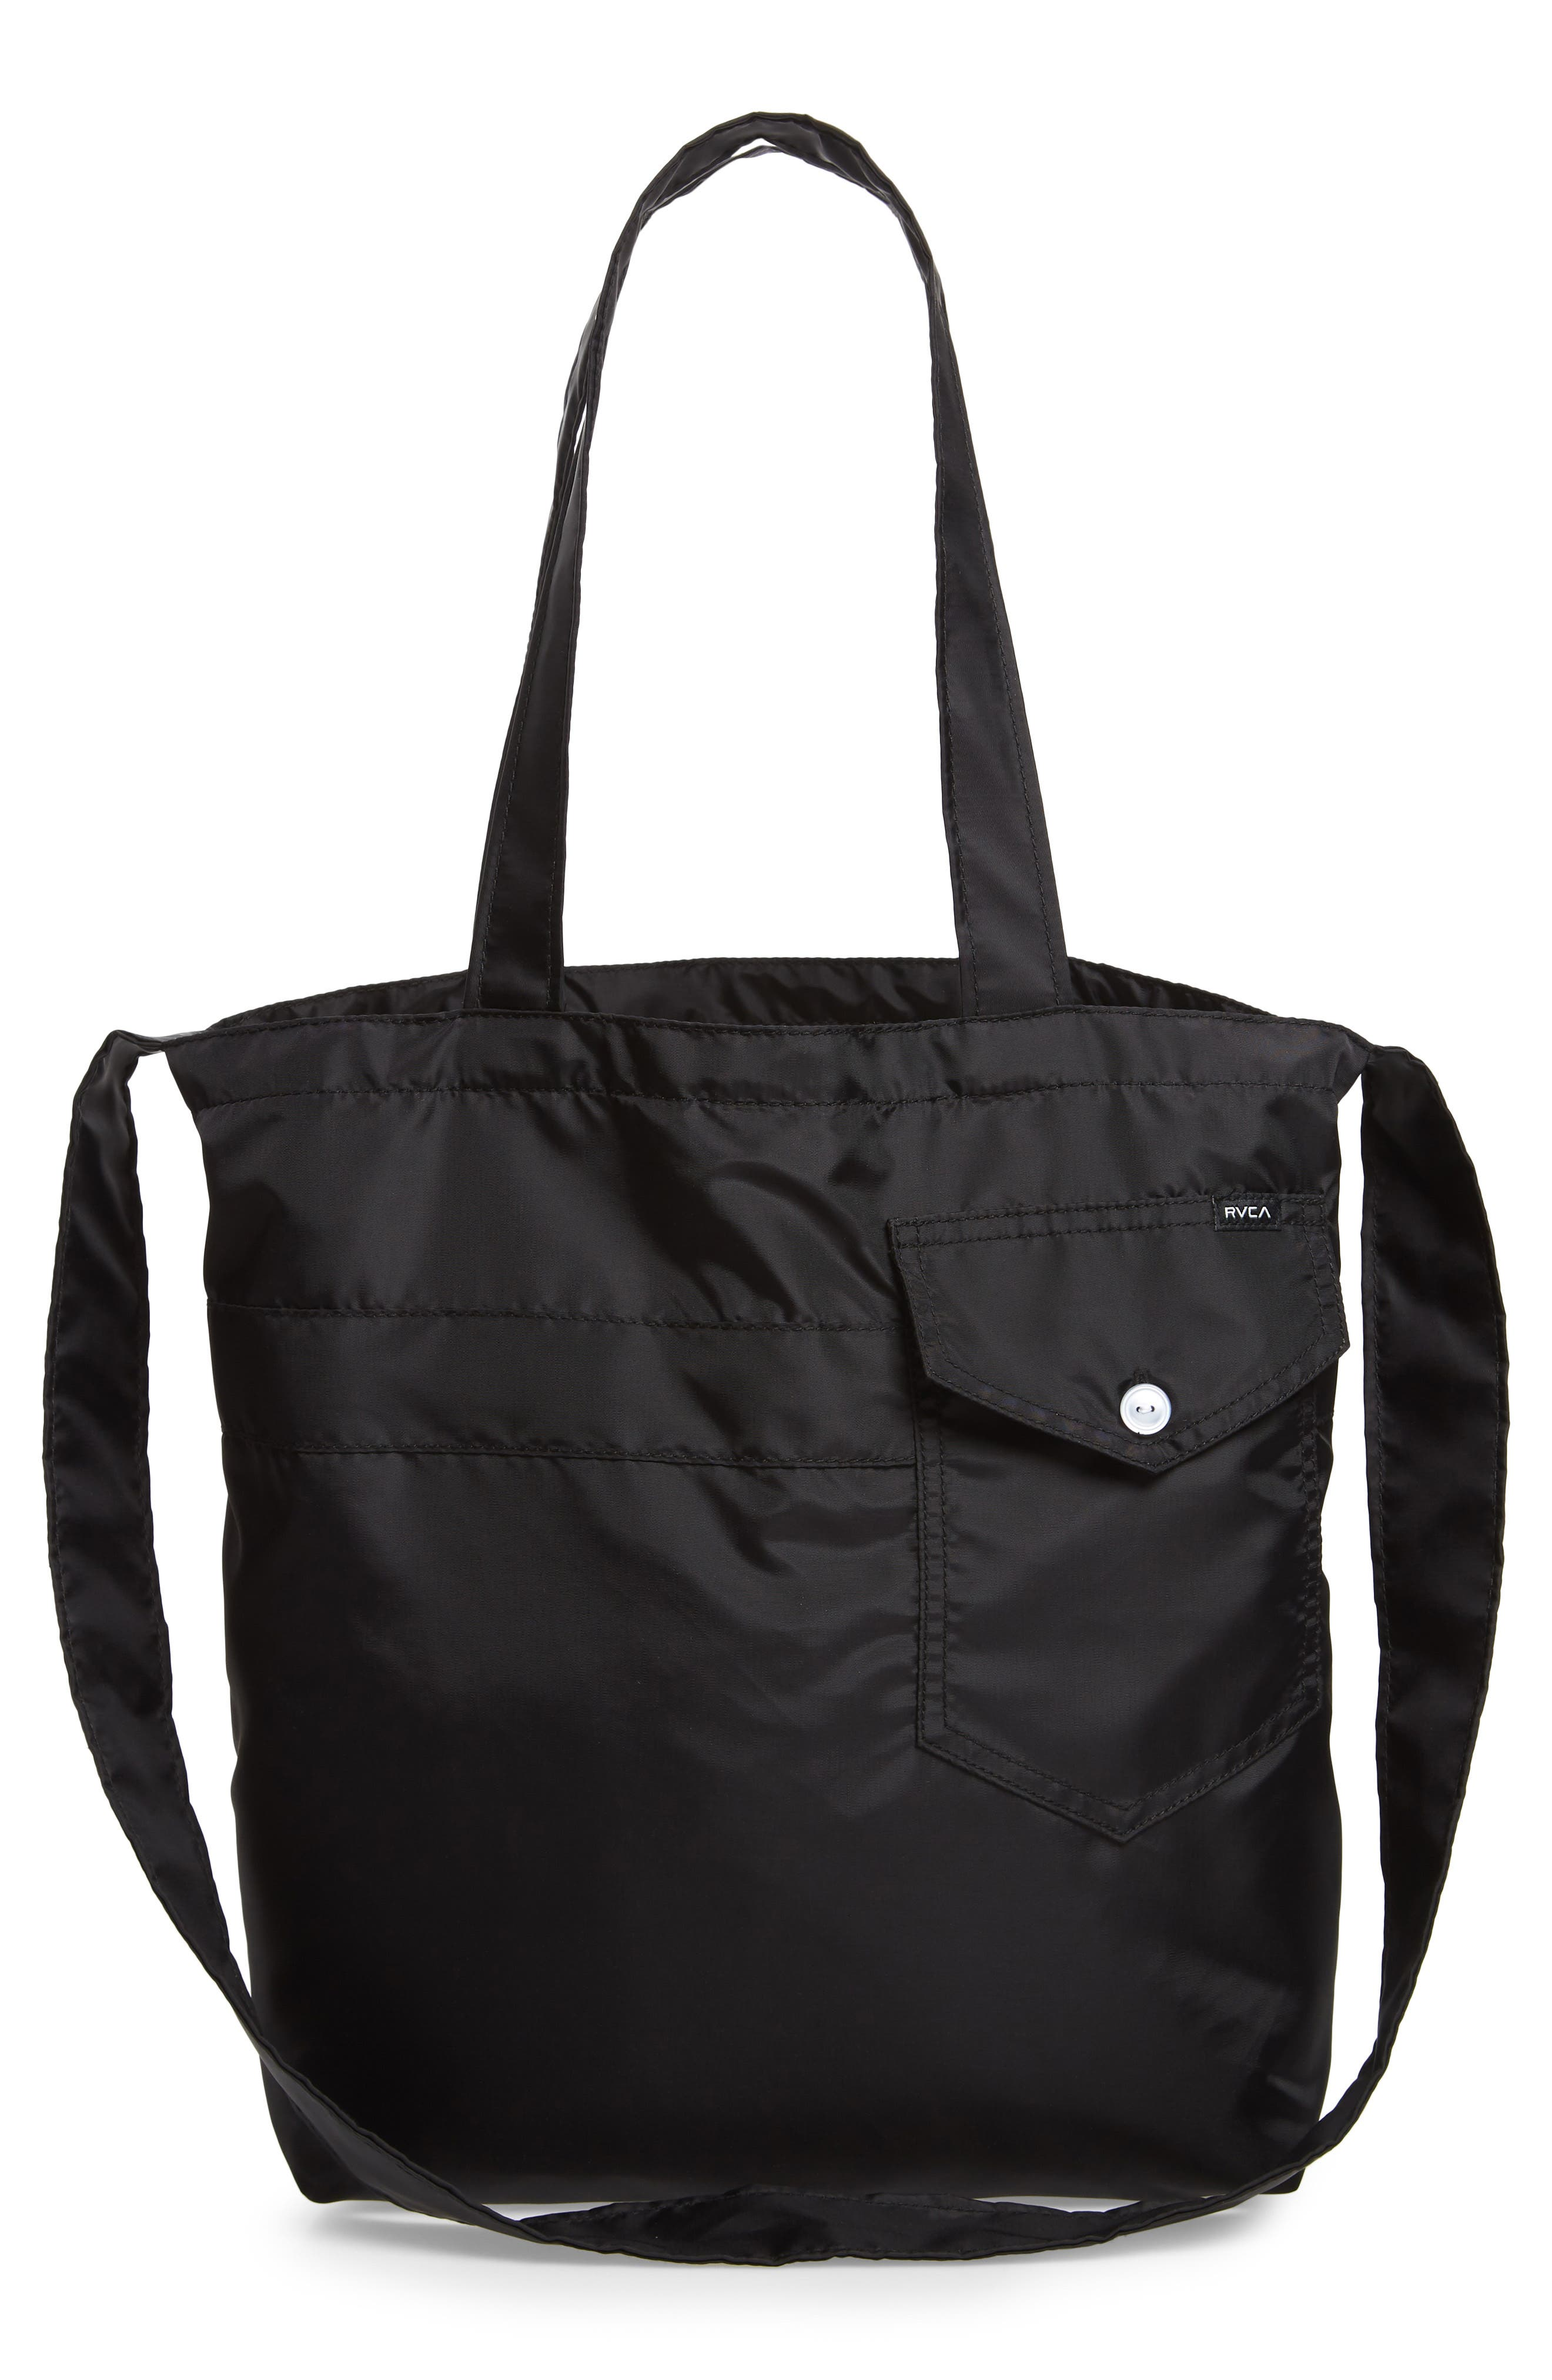 Bomber Nylon Tote,                             Alternate thumbnail 3, color,                             001